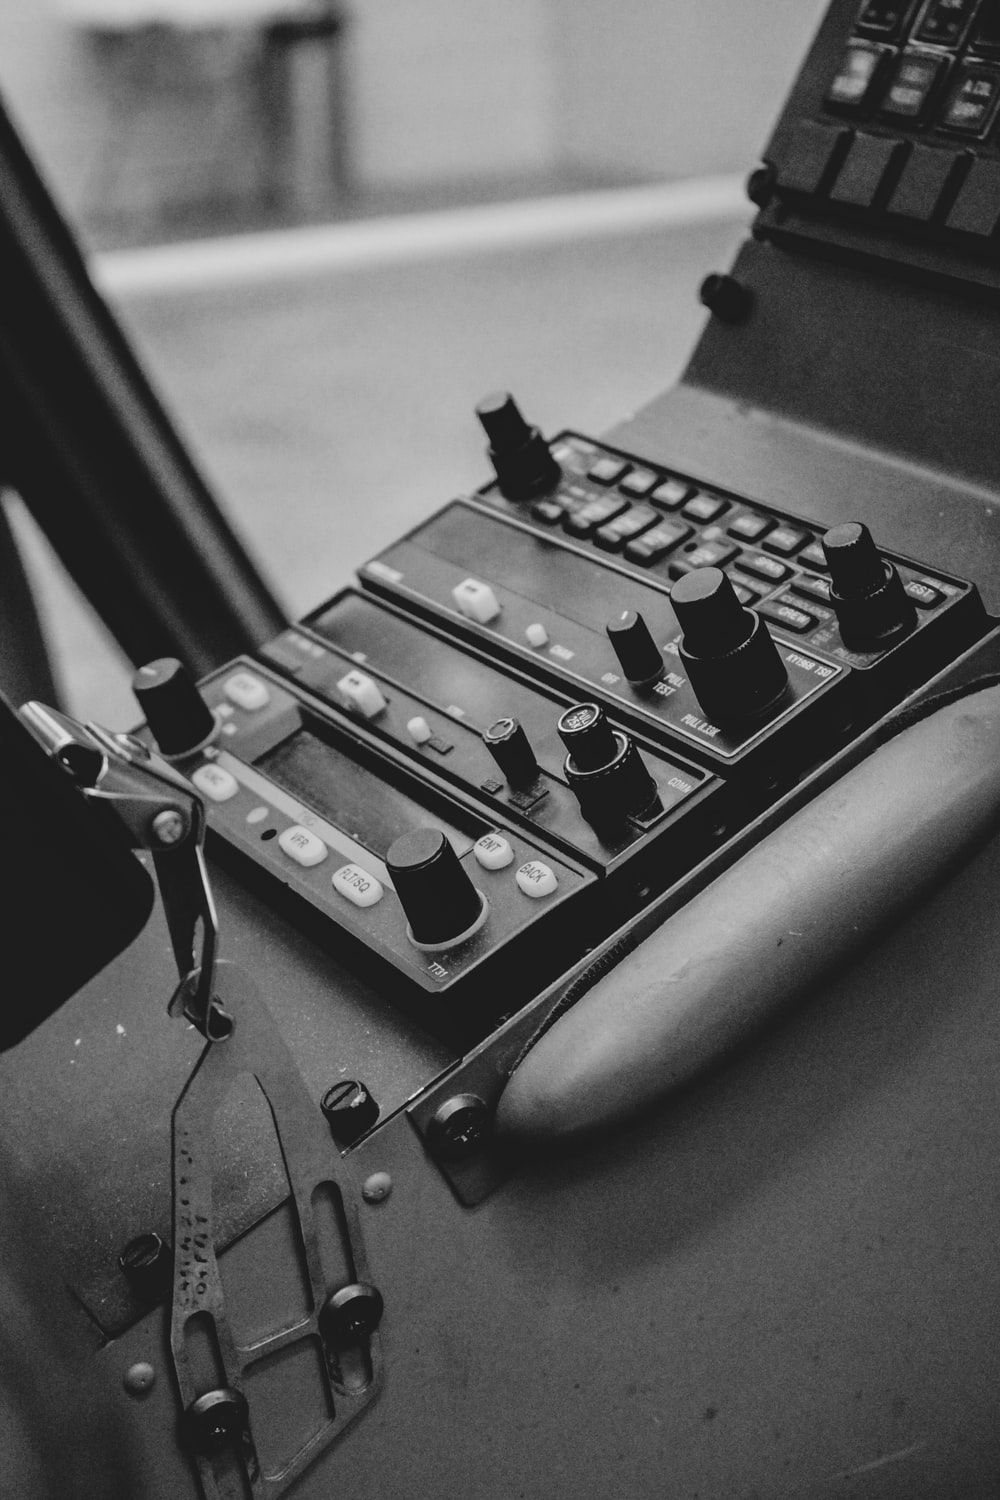 grayscale photography of vehicle control panel